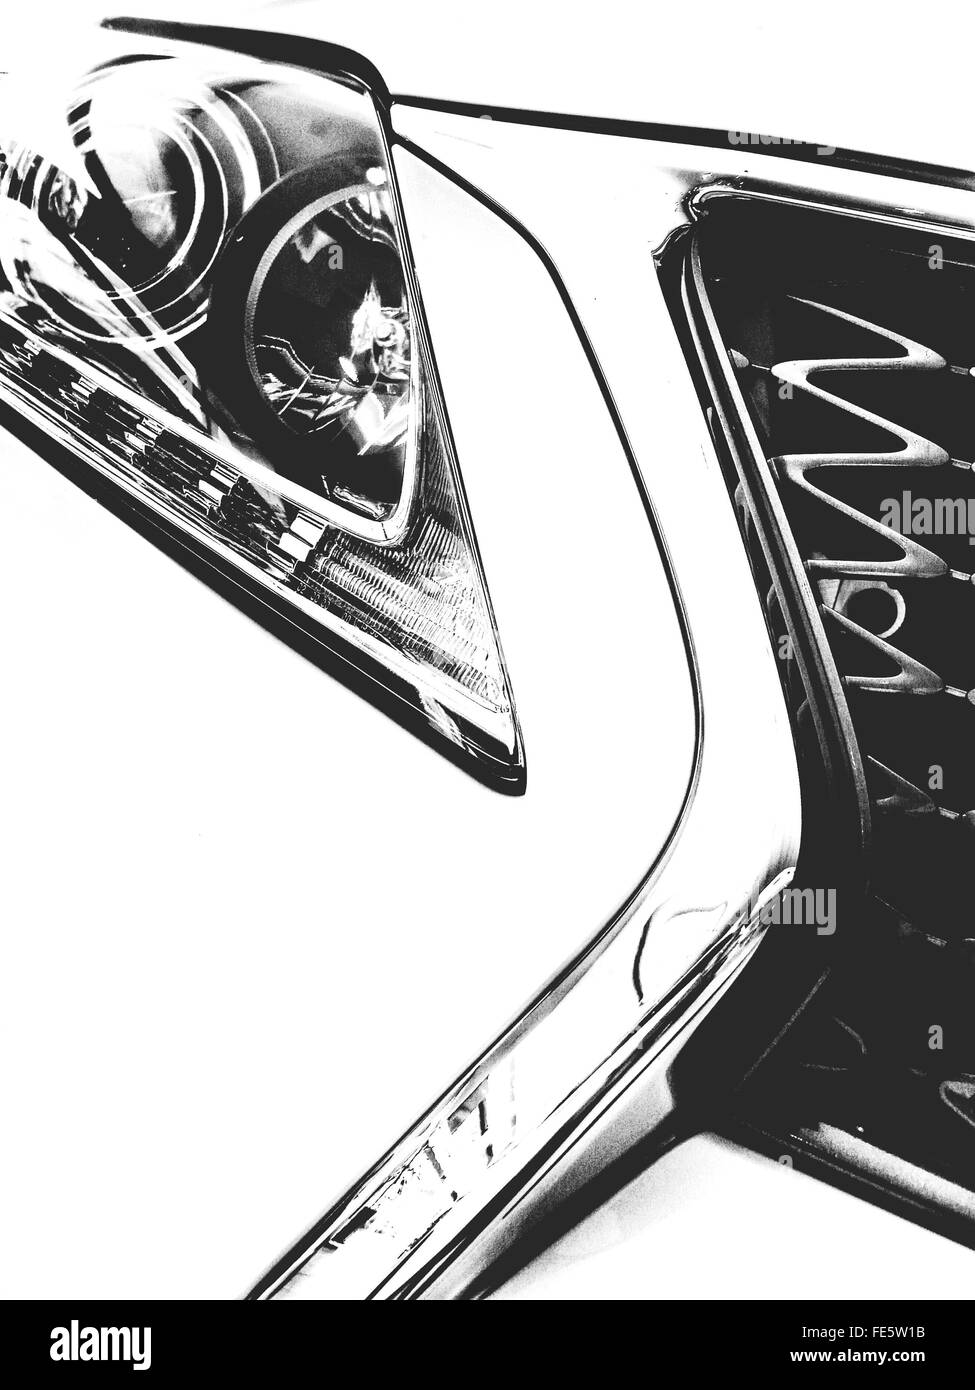 Close-Up Of Luxury Car Headlight And Grille - Stock Image